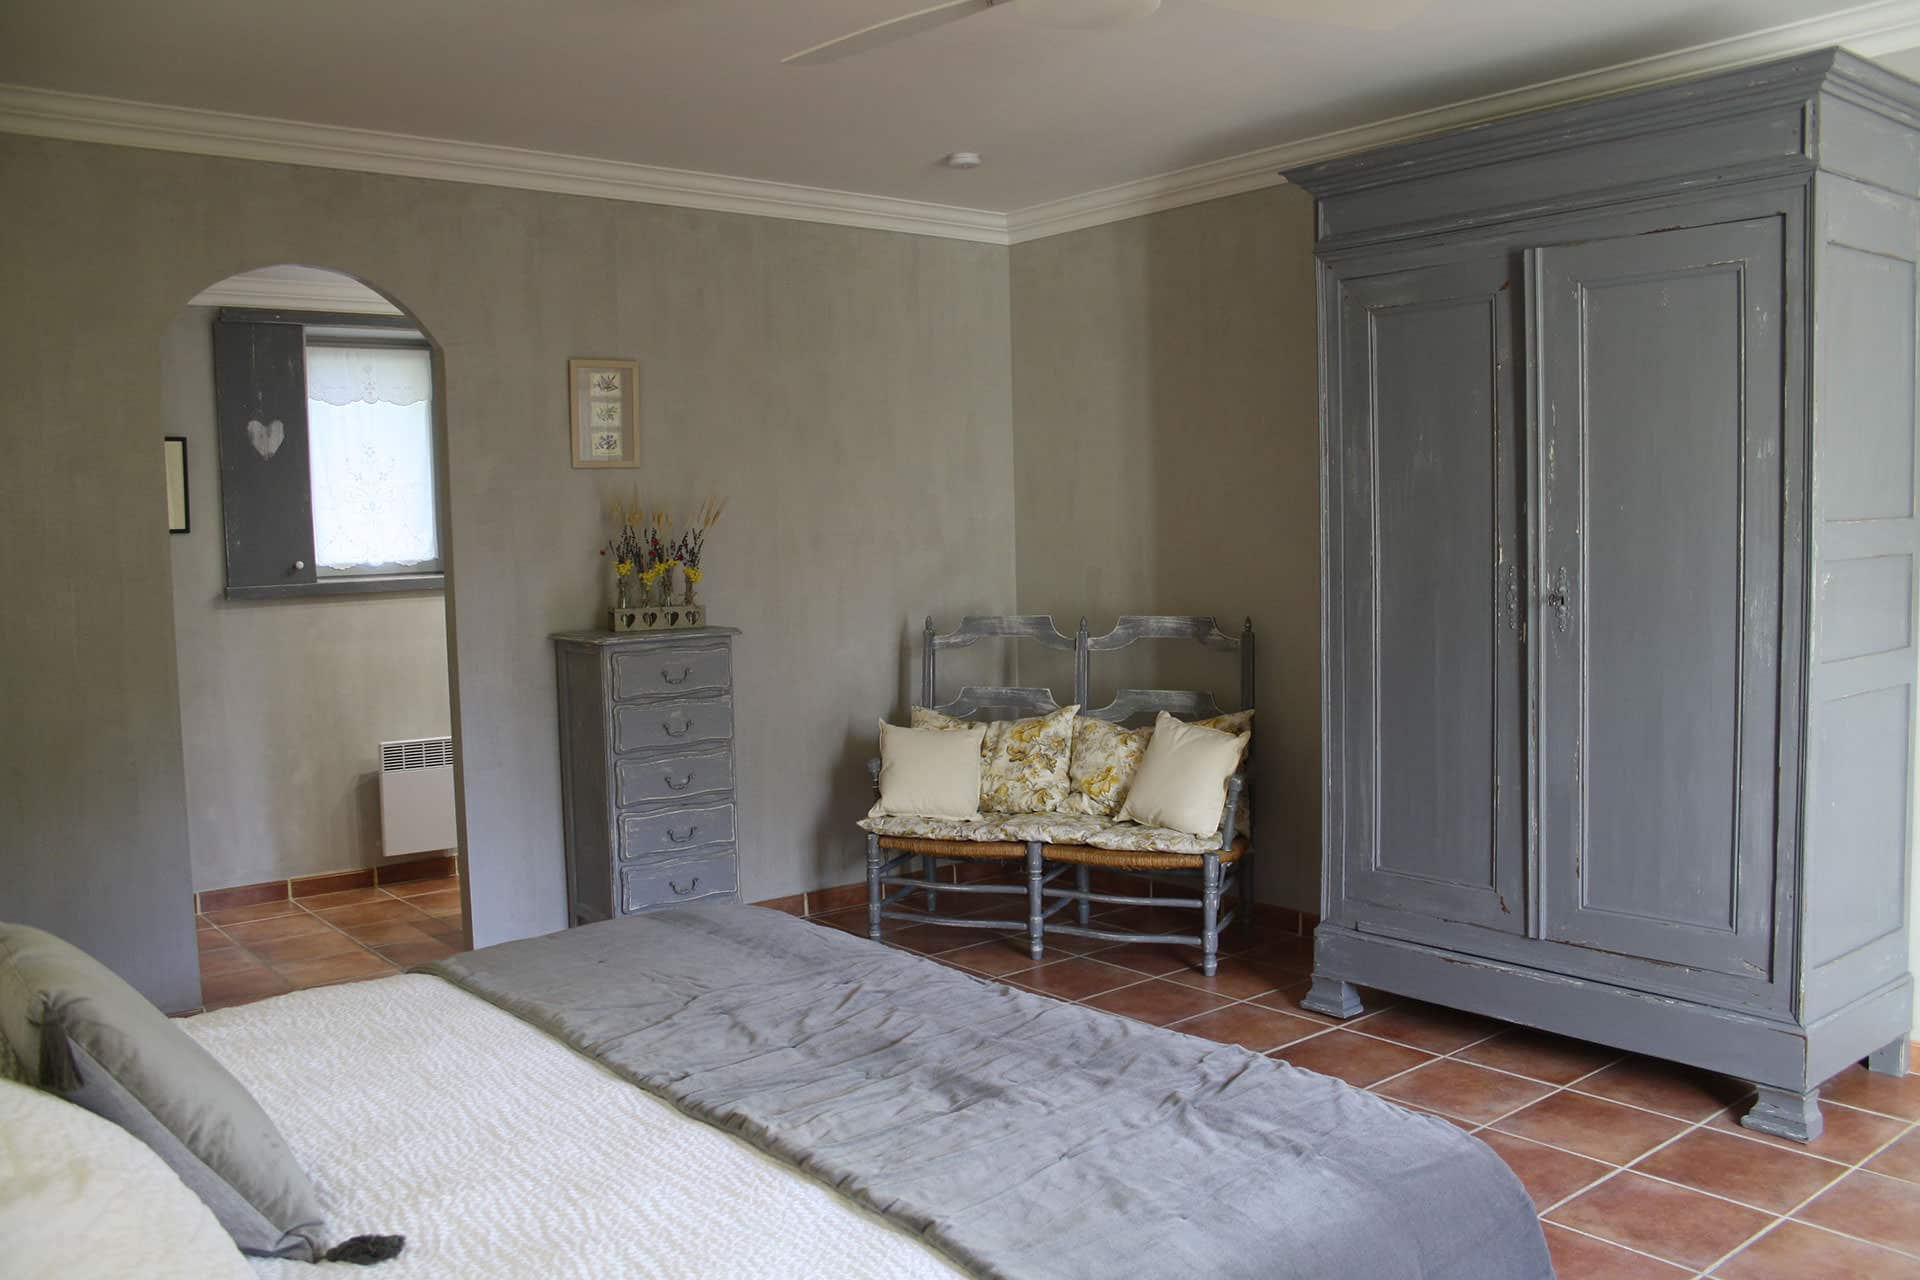 Bed and Breakfast Vaucluse